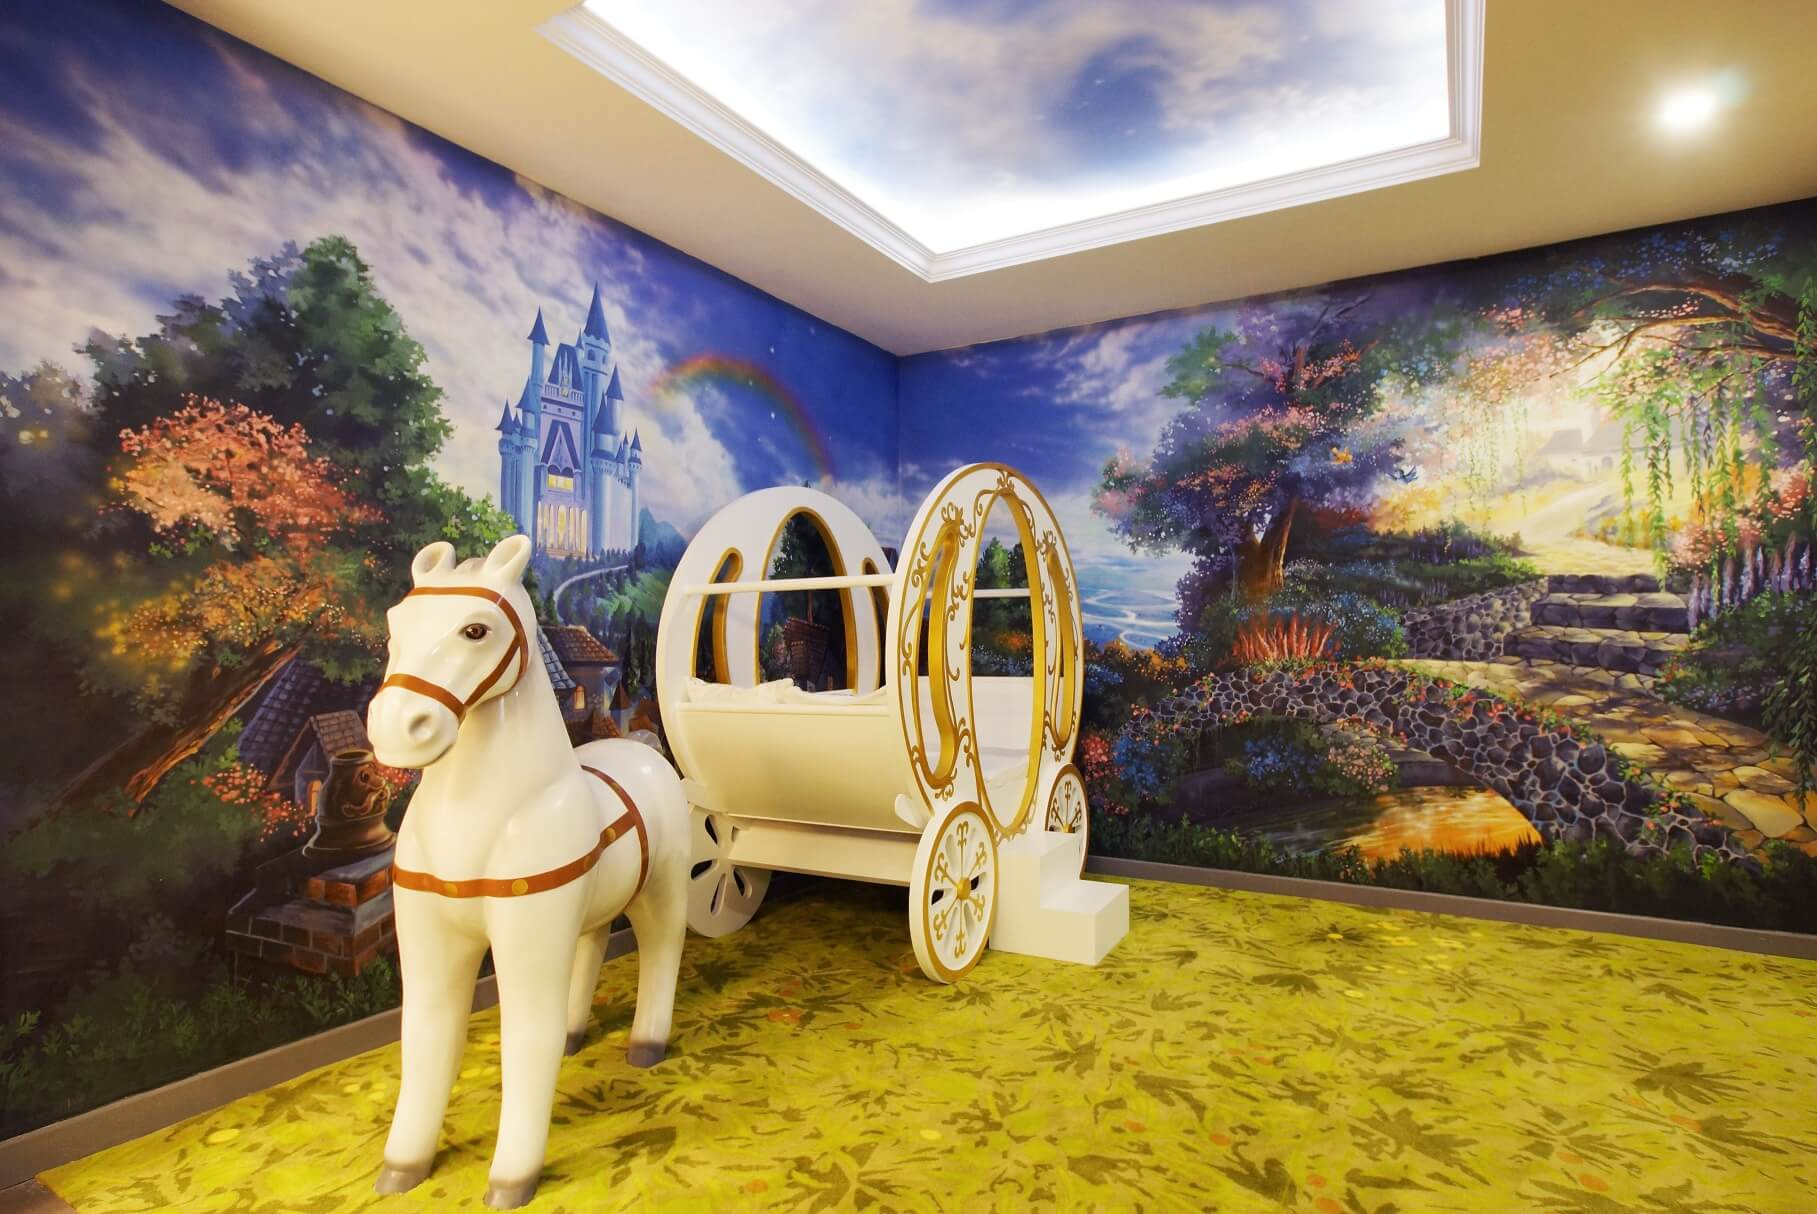 Hotel Maison Boutique Executive Suite Fairy Tale